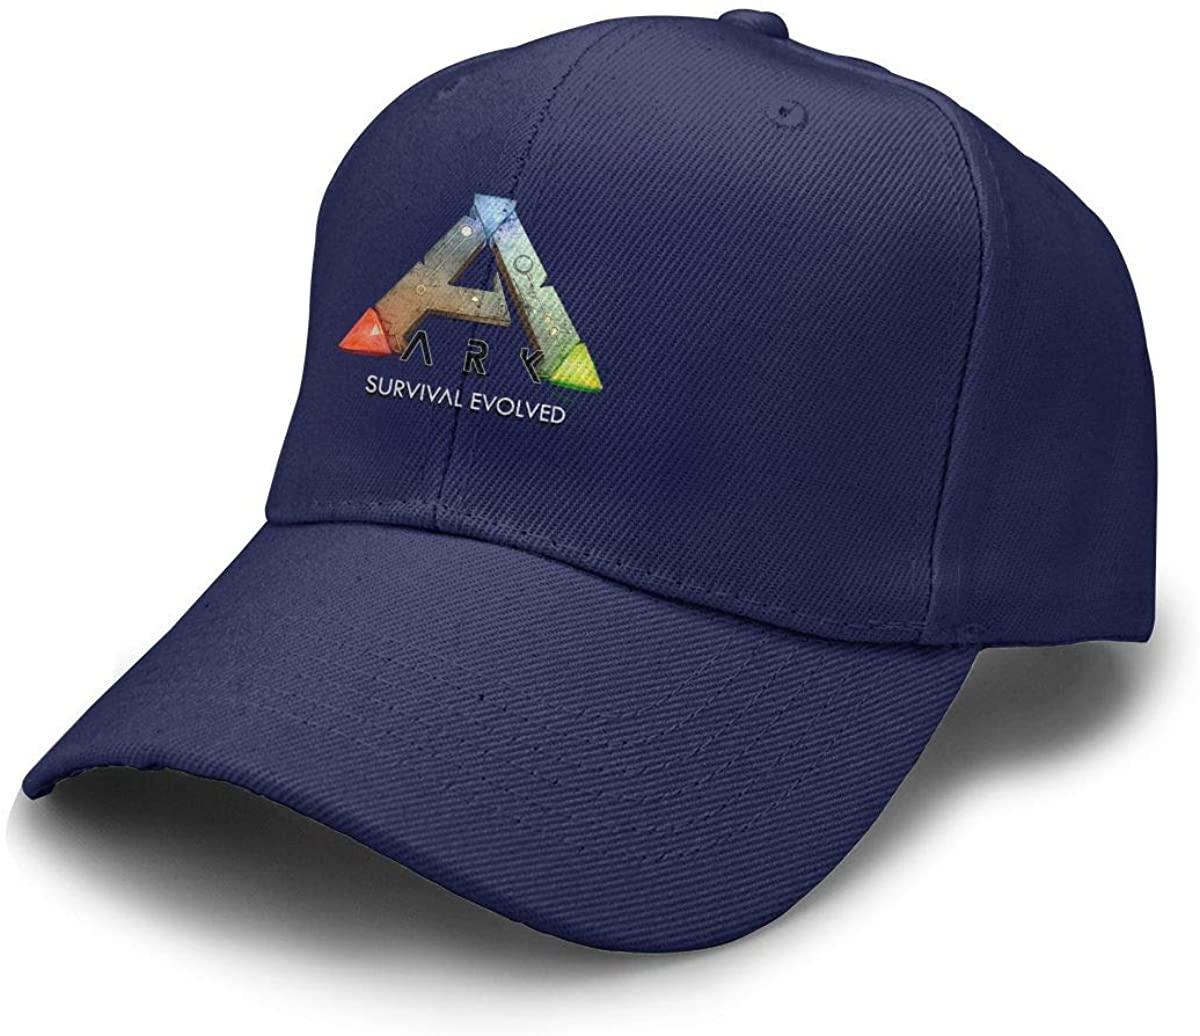 Ark Survival Evolved Solid Color Baseball Caps Ark Survival Evolved Trucker Hat Unisex